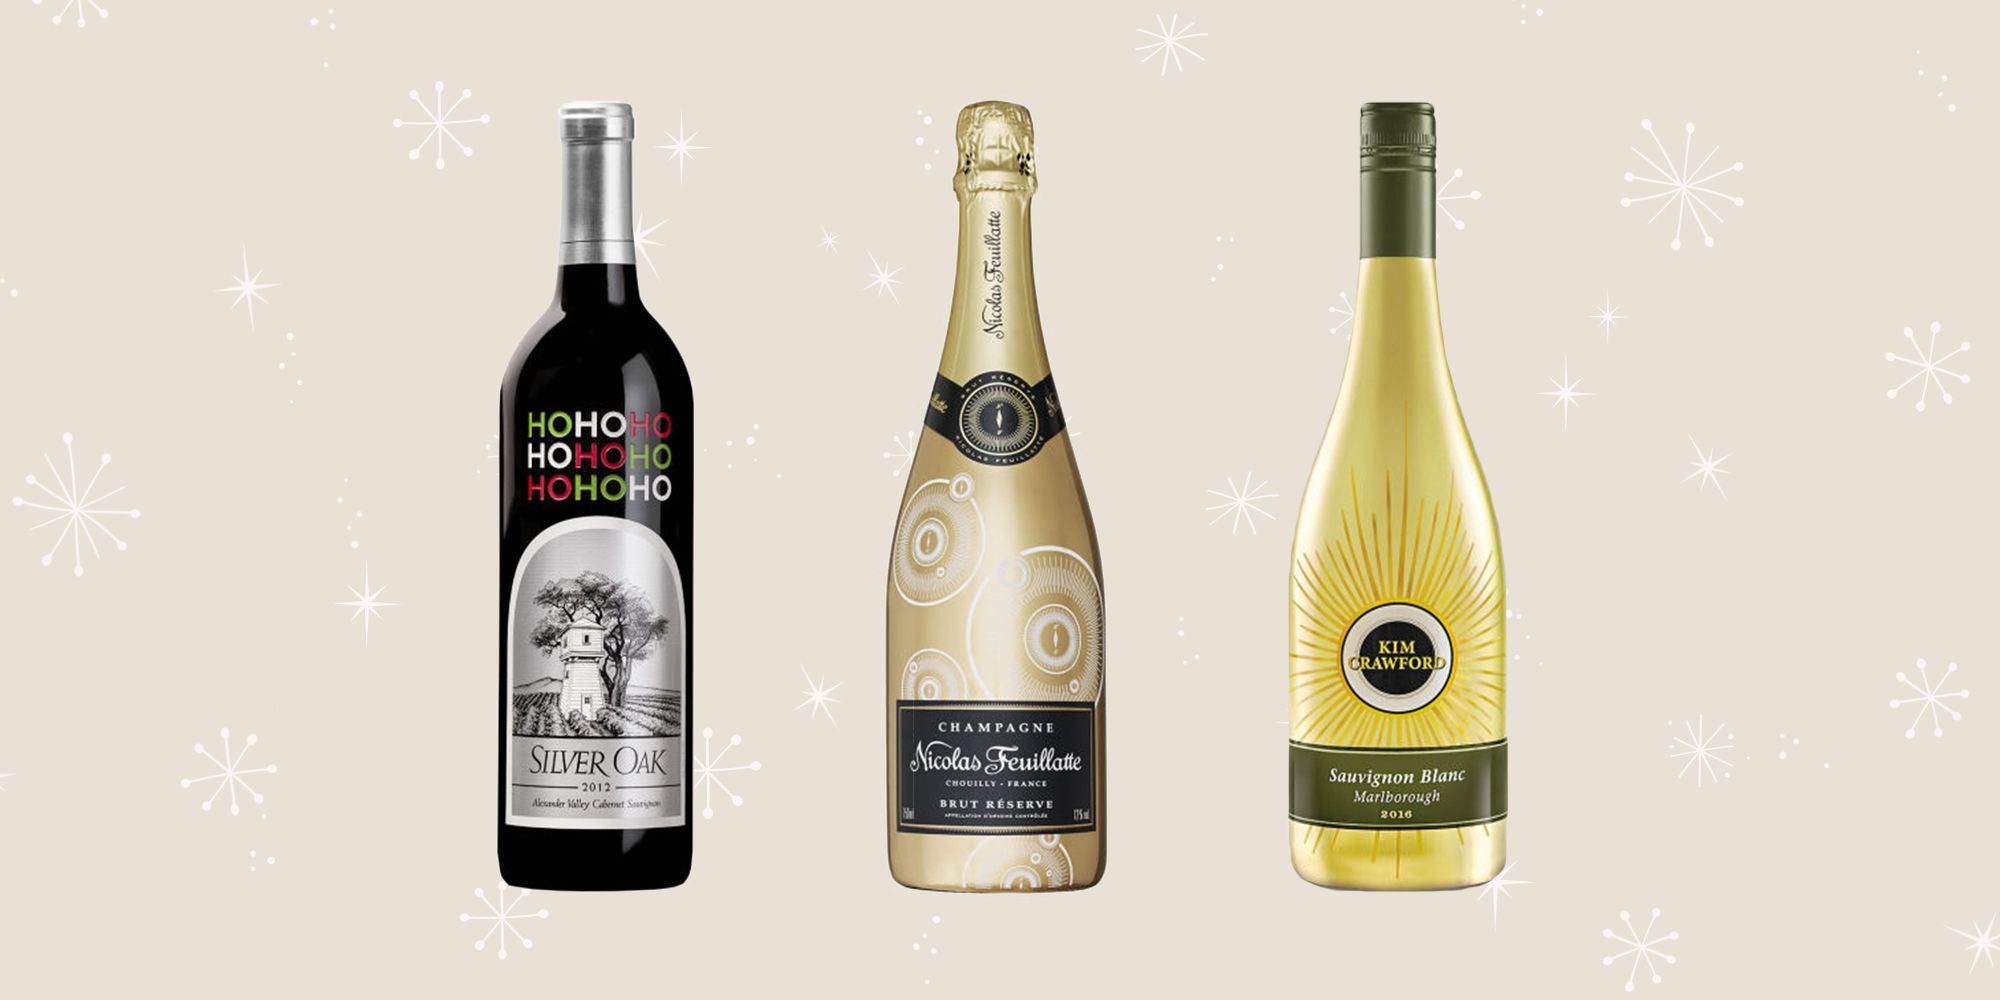 Wines That Are Giftable Holiday Wines And Champagnes You Can Give